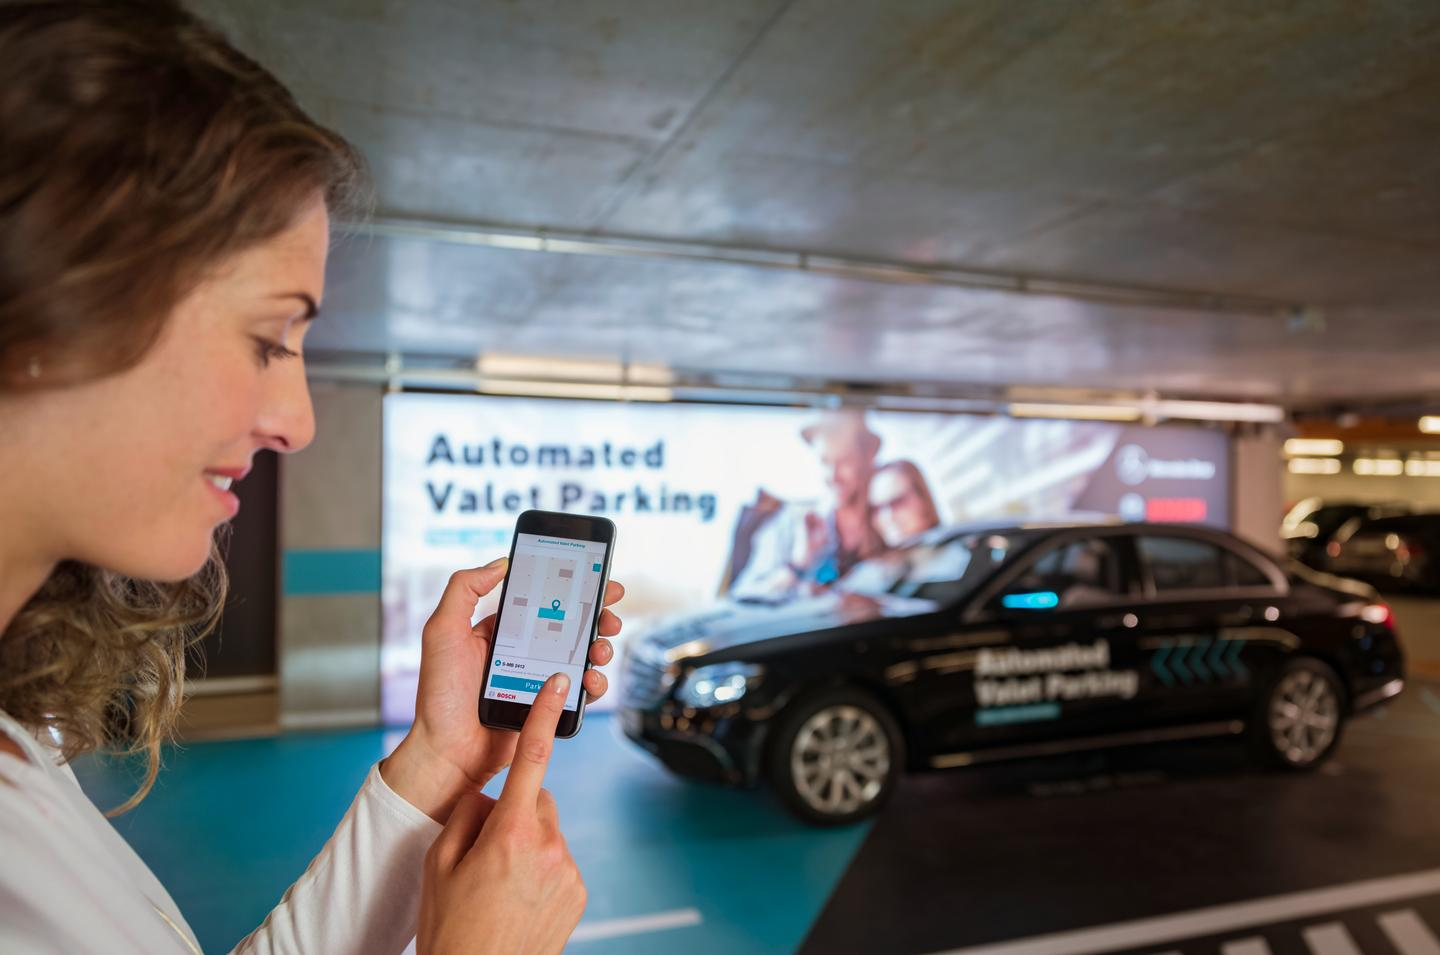 Visitors to the Mercedes-Benz Museum in Stuttgart can now take advantage of the first officially-approved driverless automated valet parking system